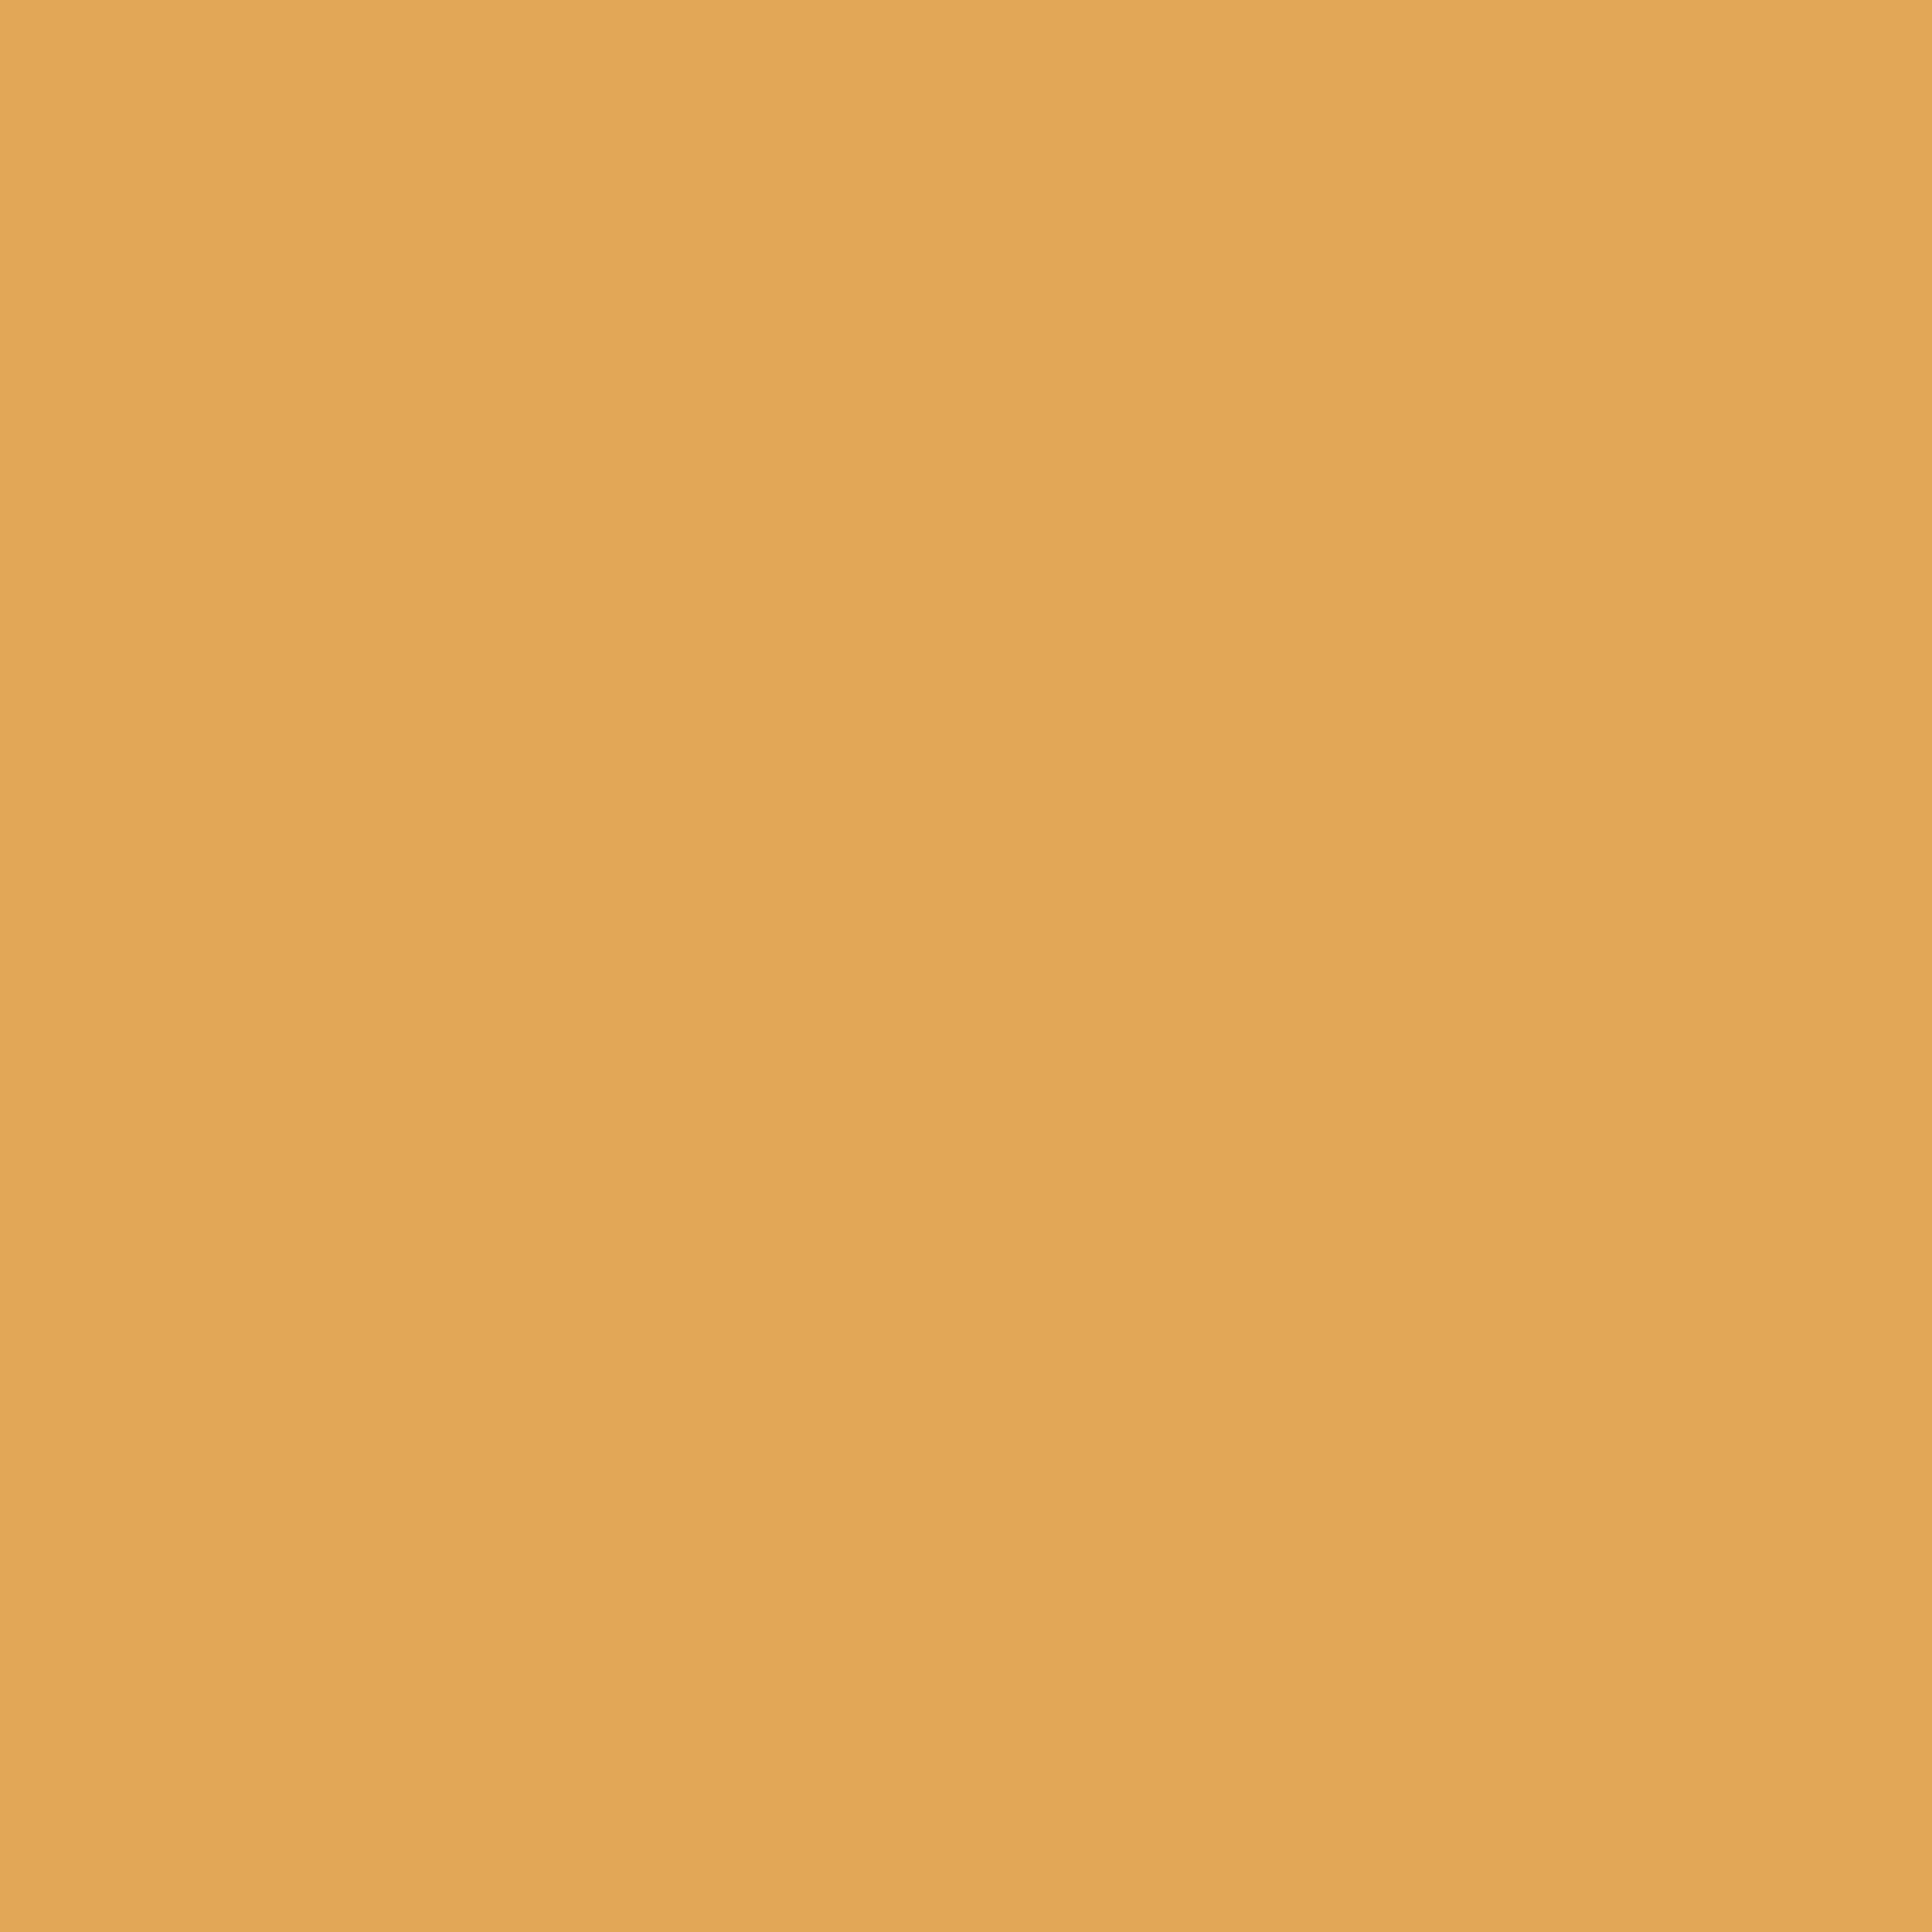 2048x2048 Indian Yellow Solid Color Background